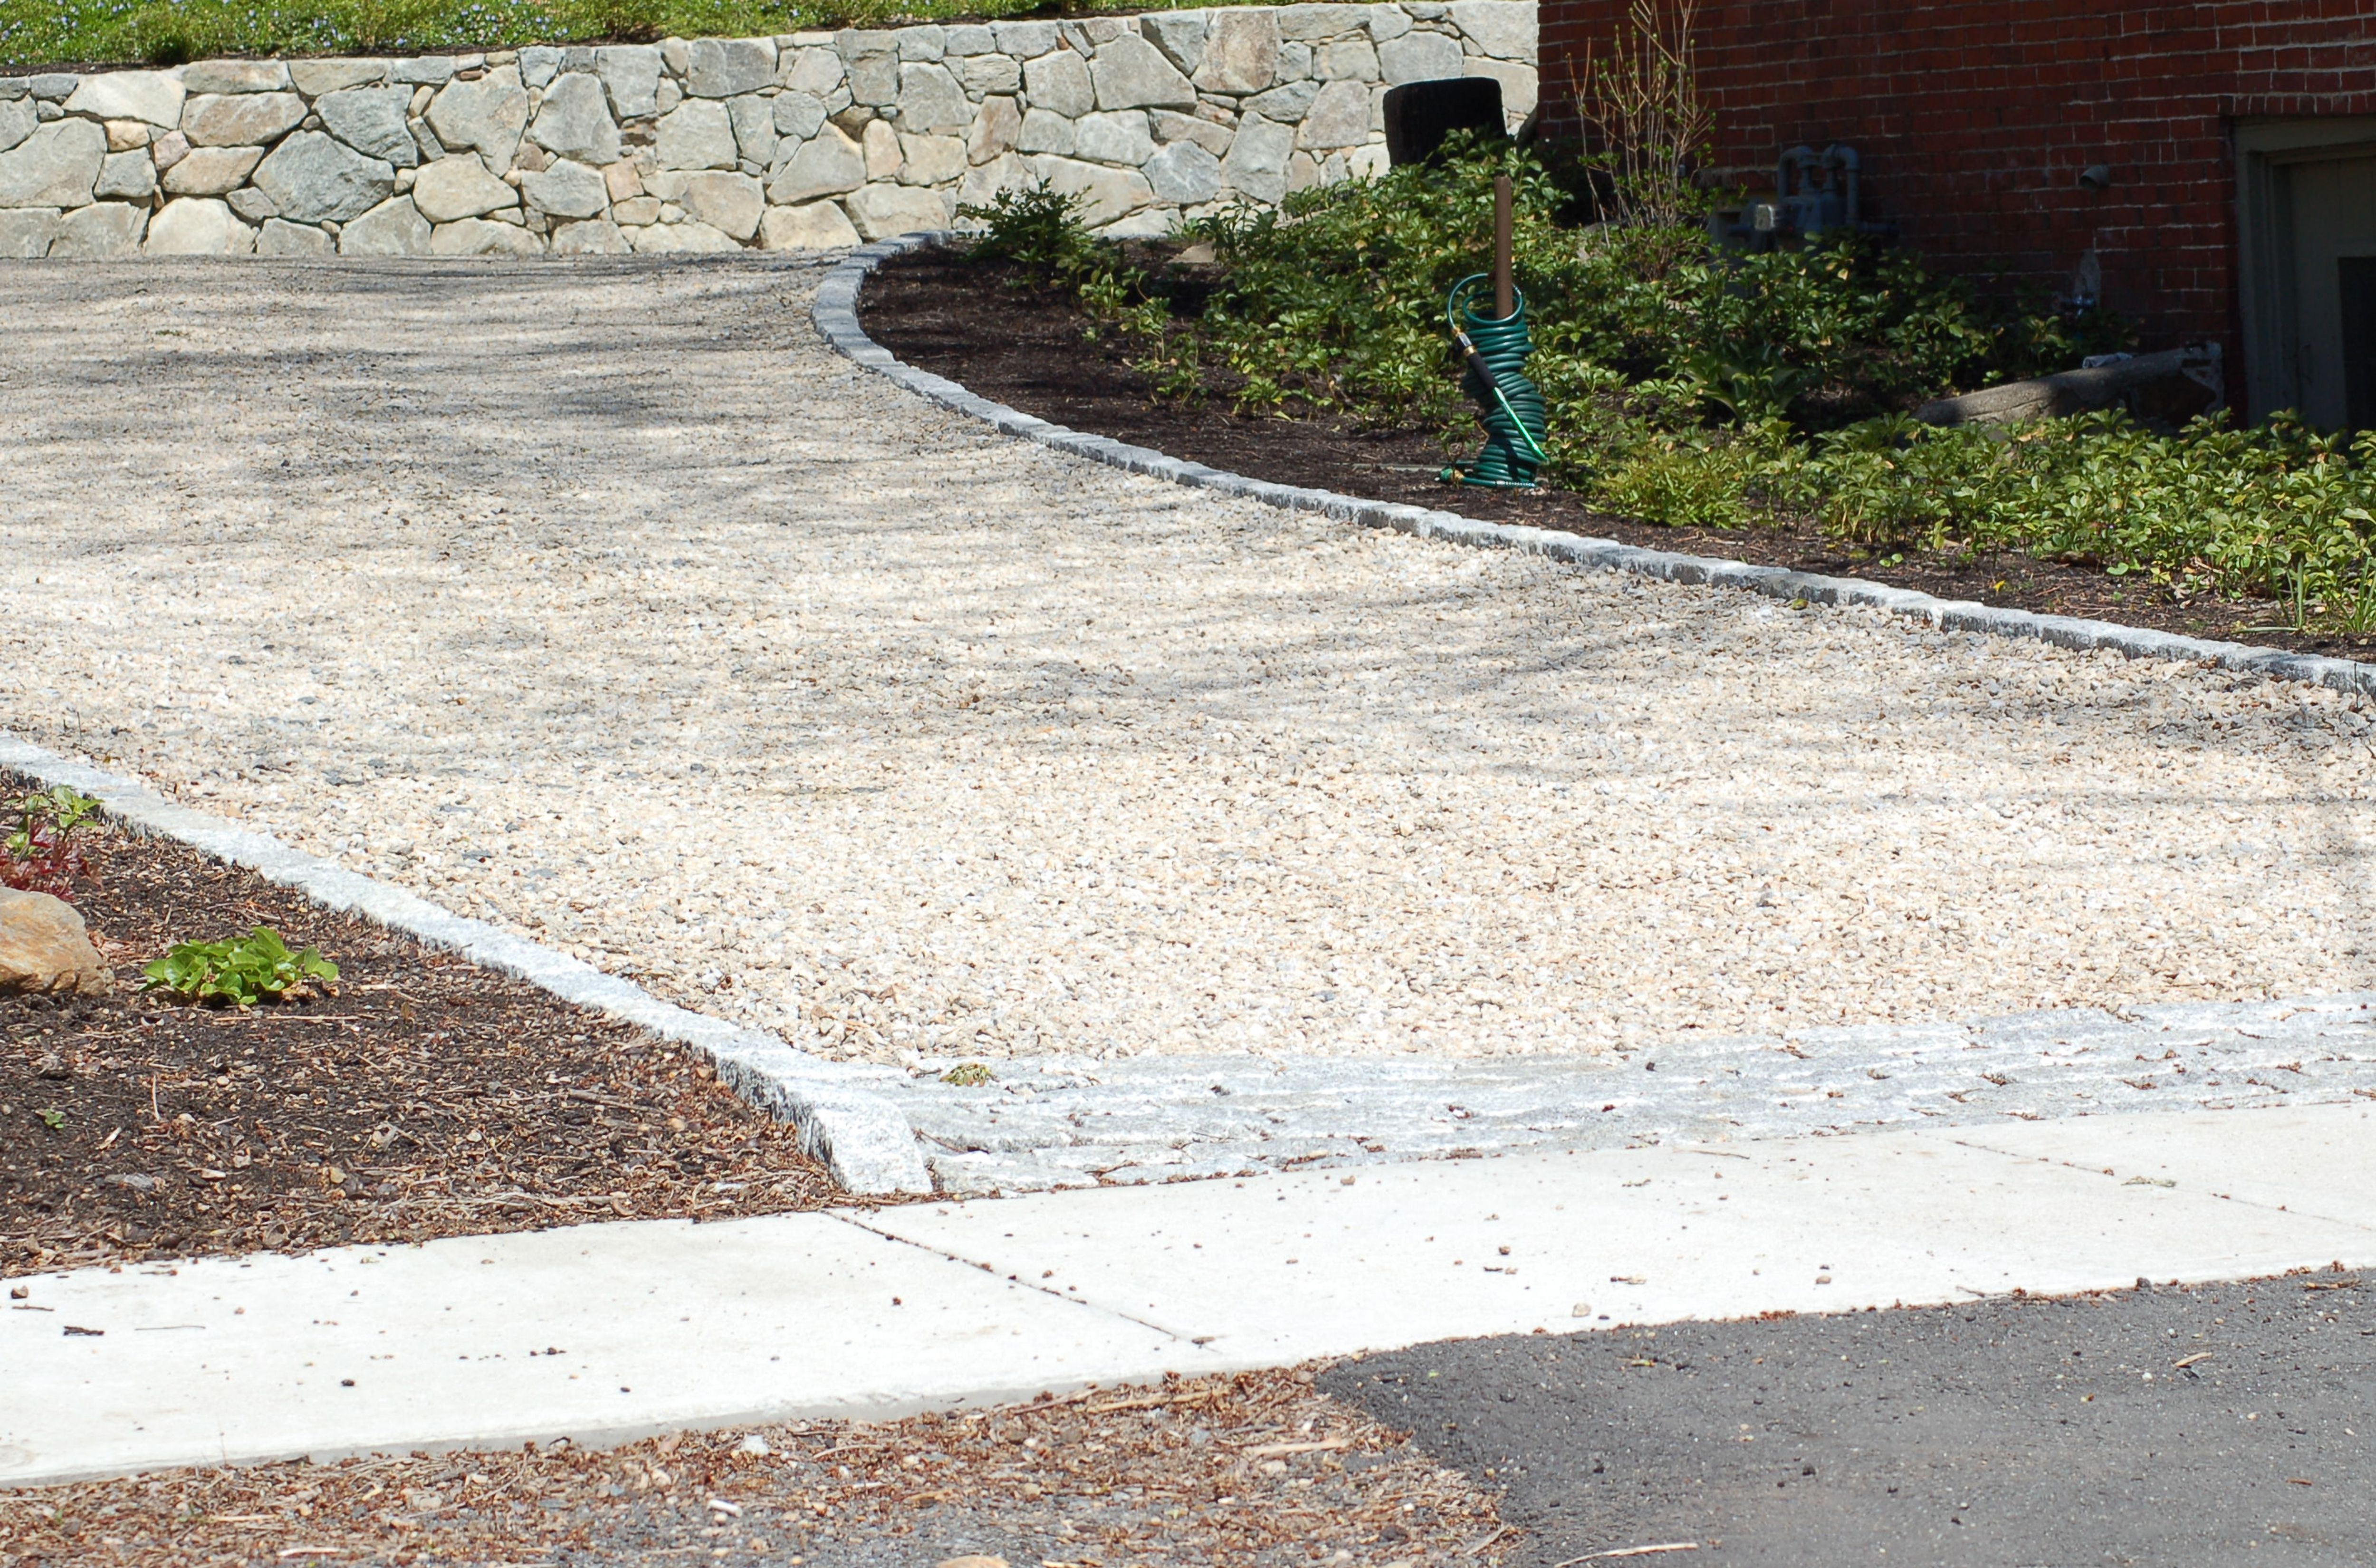 Heated driveways cost for built in systems vs mats what kind of driveway should you have installed solutioingenieria Choice Image